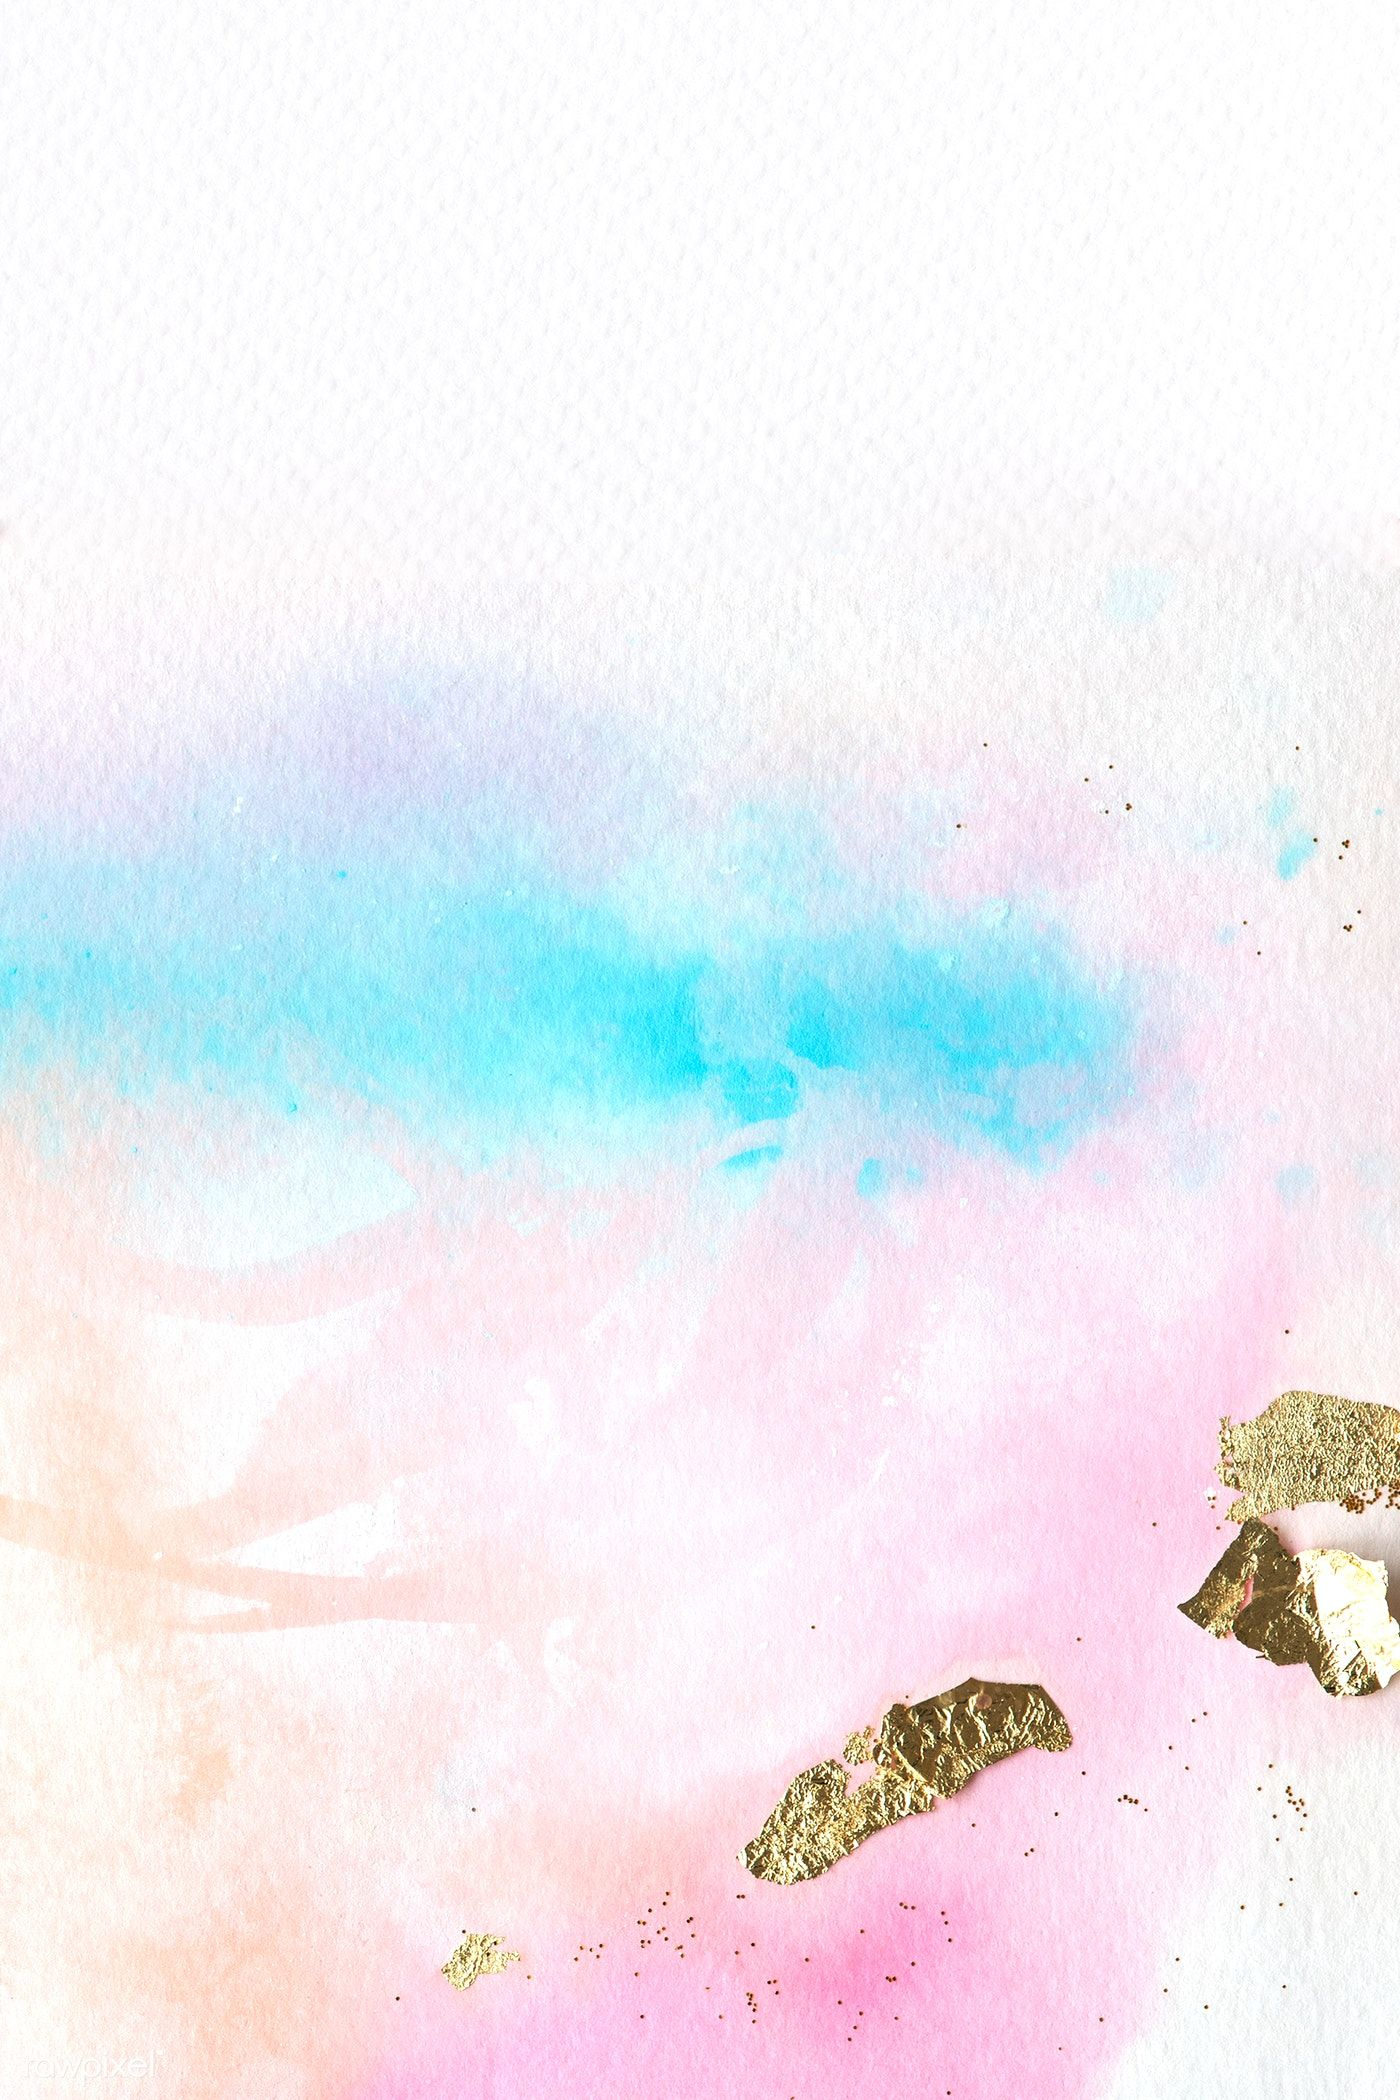 Colorful Abstract Watercolor Painting Background Free Image By